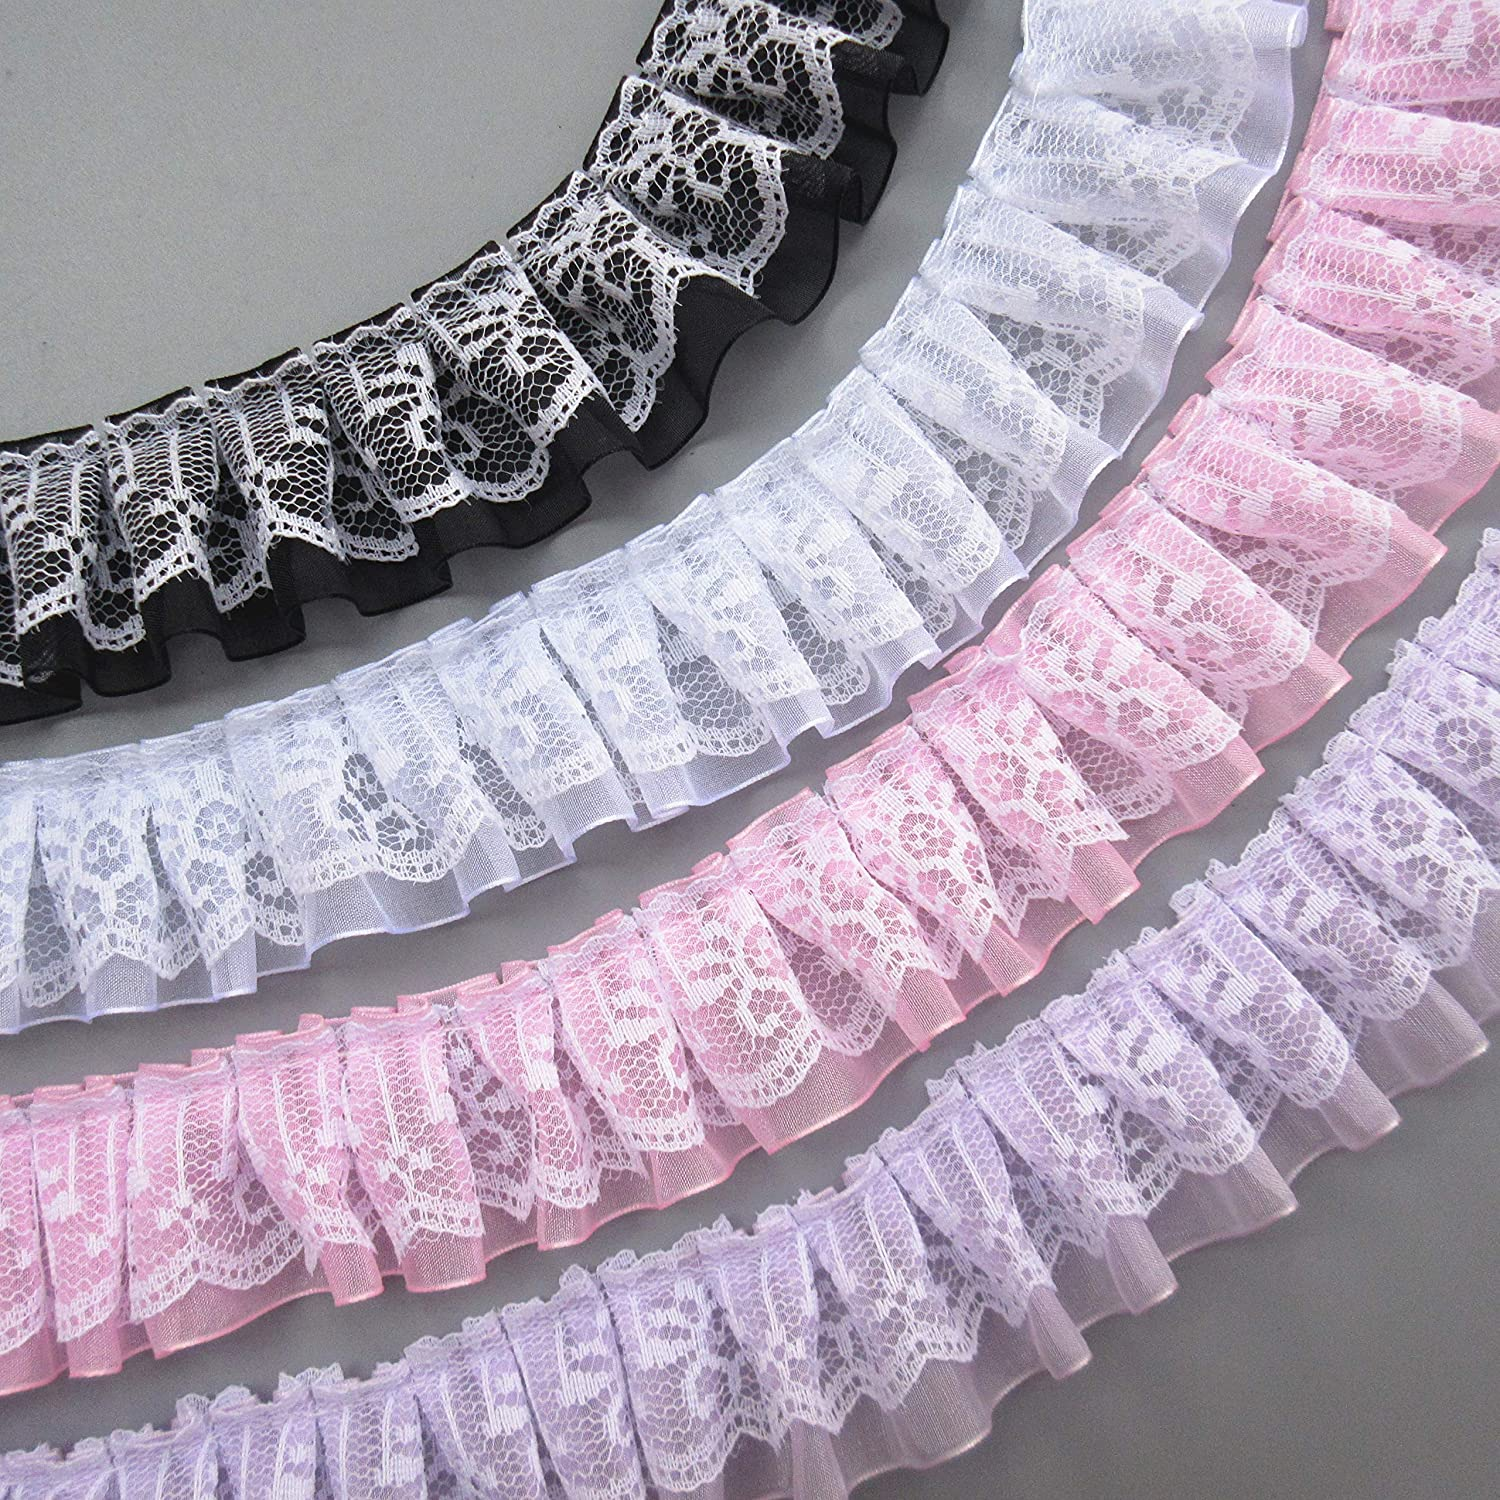 White 10 Yard Pleated Organza Lace Edge Trim Ribbon 1-1//2 inch Wide Assorted Colors Trimming Ruffle Fabric Embroidered Sewing Craft Wedding Bridal Dress Party Decoration Clothes Embellishment